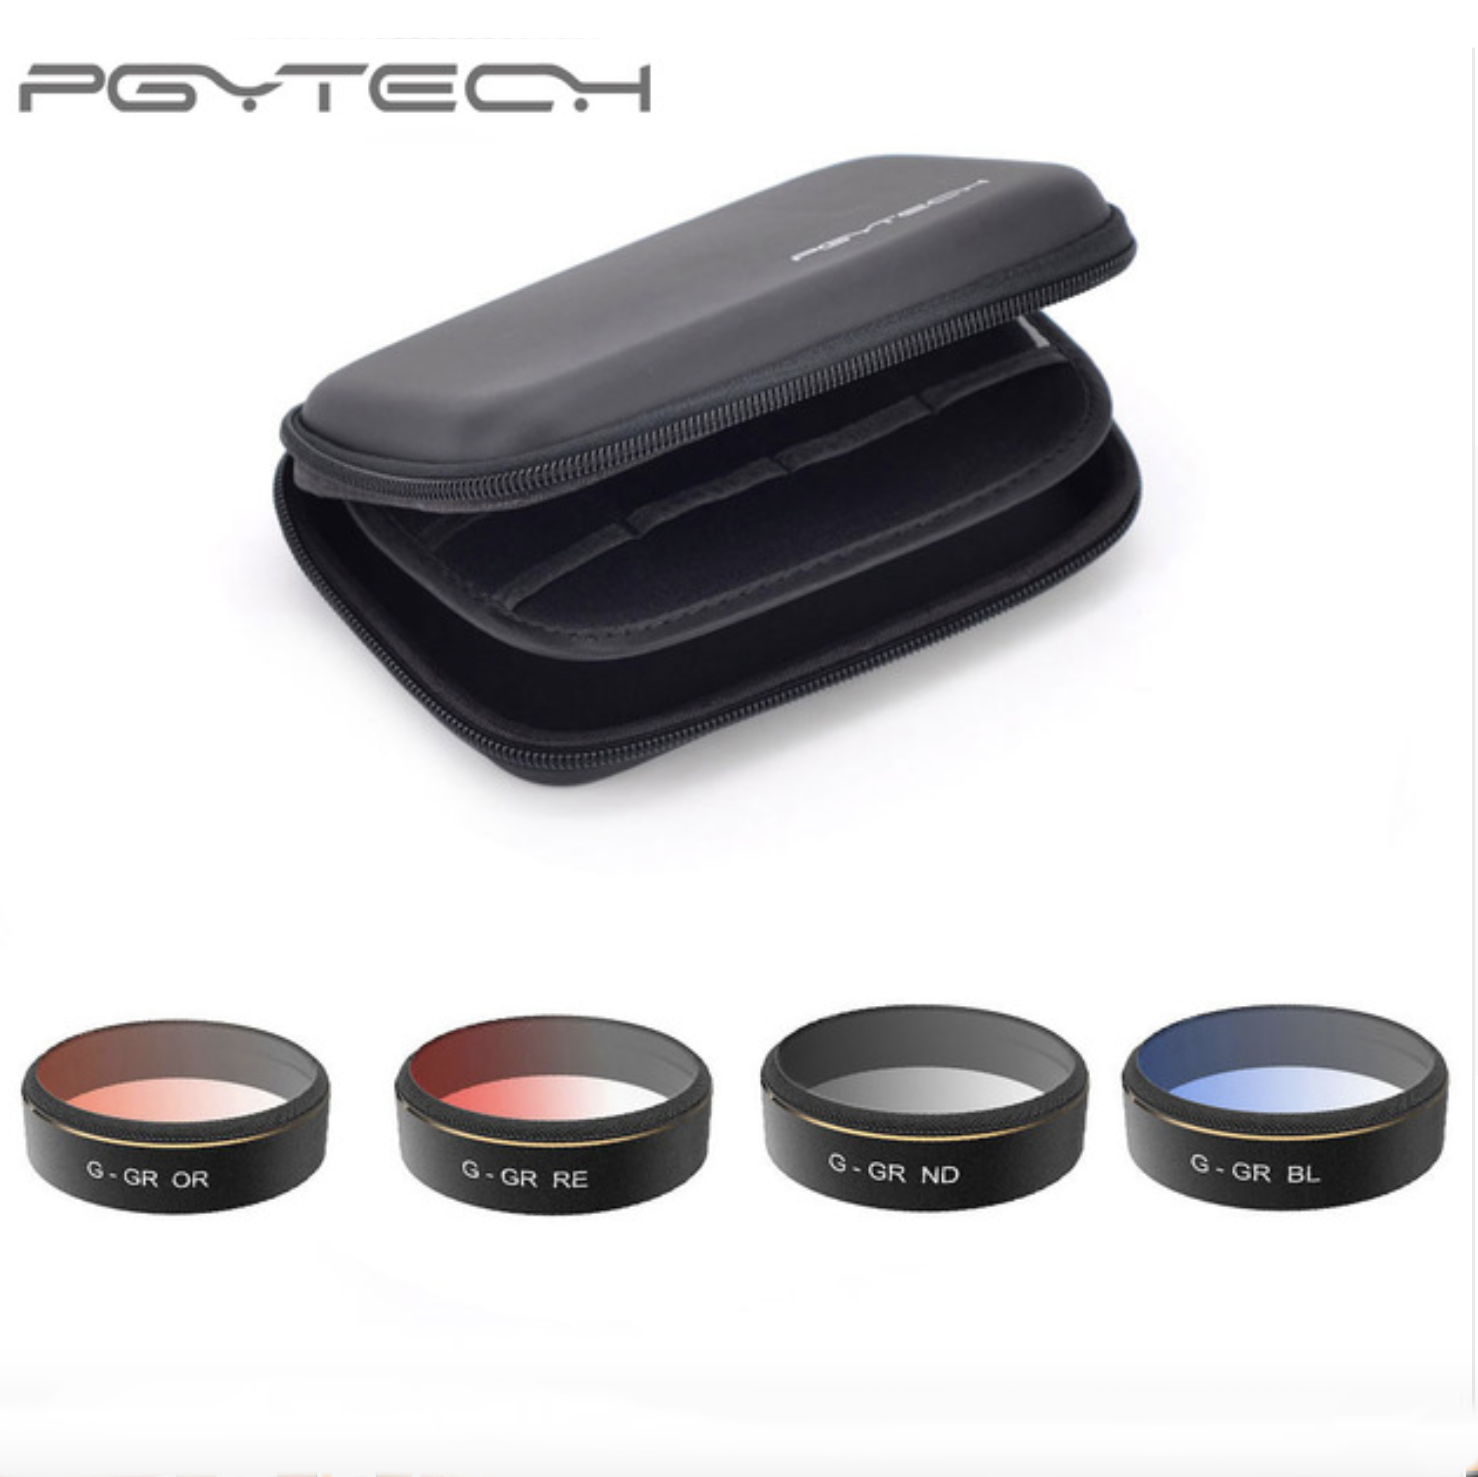 PGYTECH G-ND/ G-OR/ G-BL/ G-RE Lens Filters And 4pcs G set DJI Phantom 4 PRO